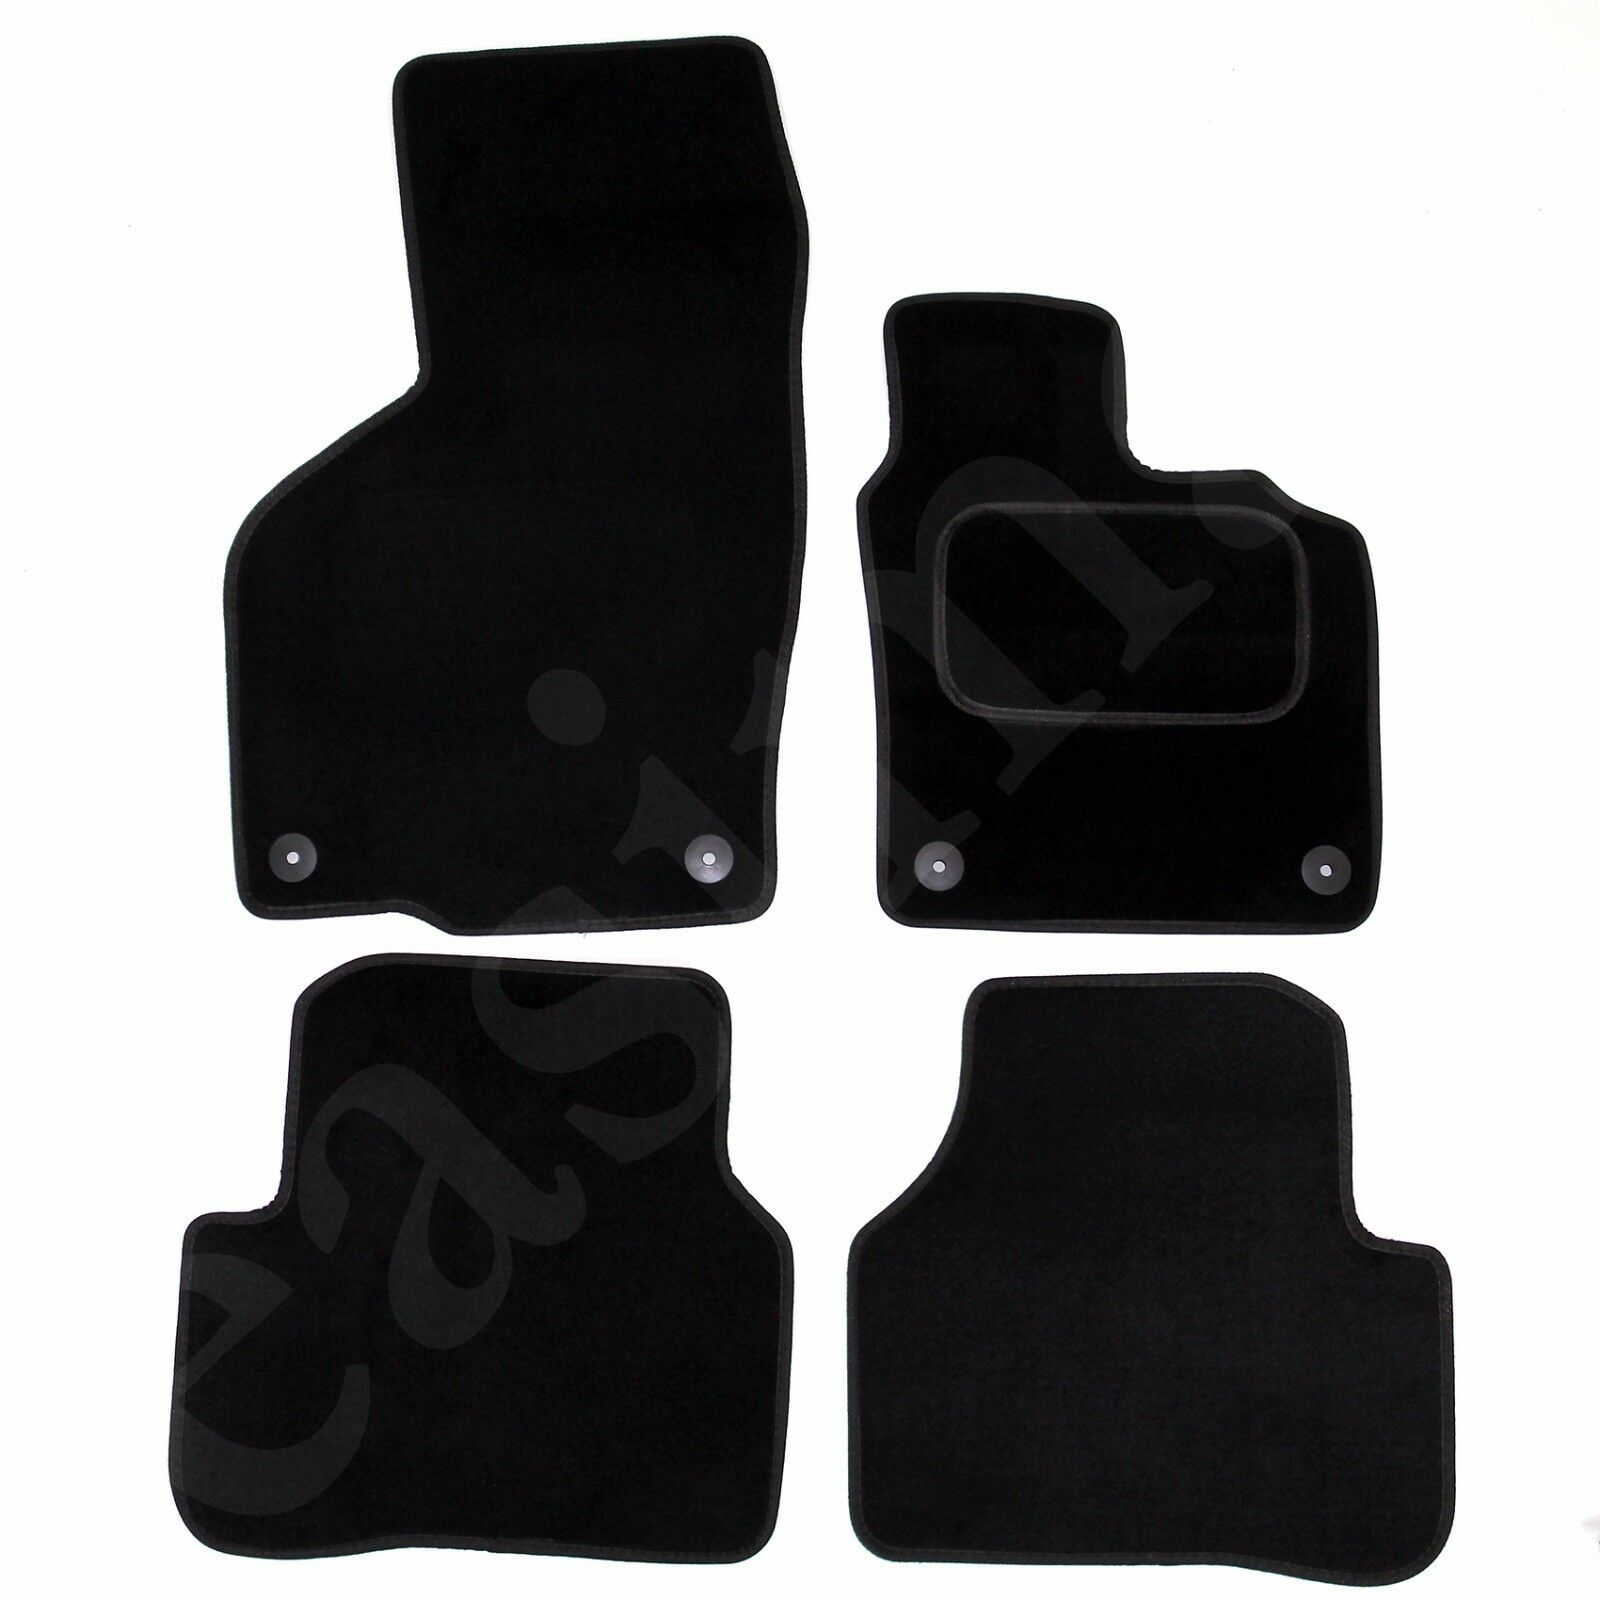 Car Parts - VW Passat B6 B7 2005-2015 Tailored Carpet Car Mats Round Clips 4pcs Floor Set